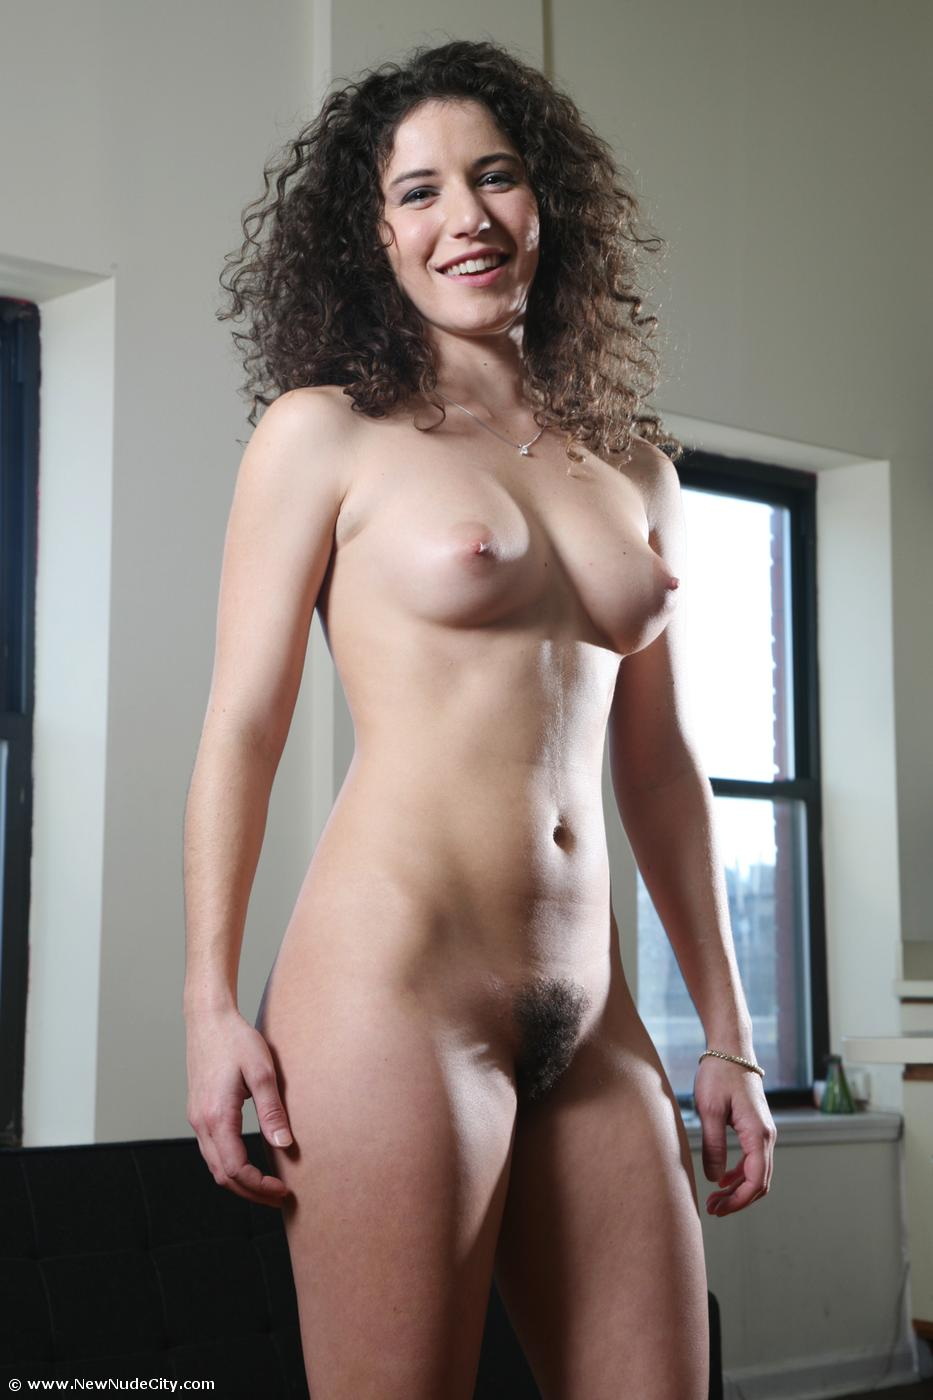 Blonde luv curly hair nudes like add